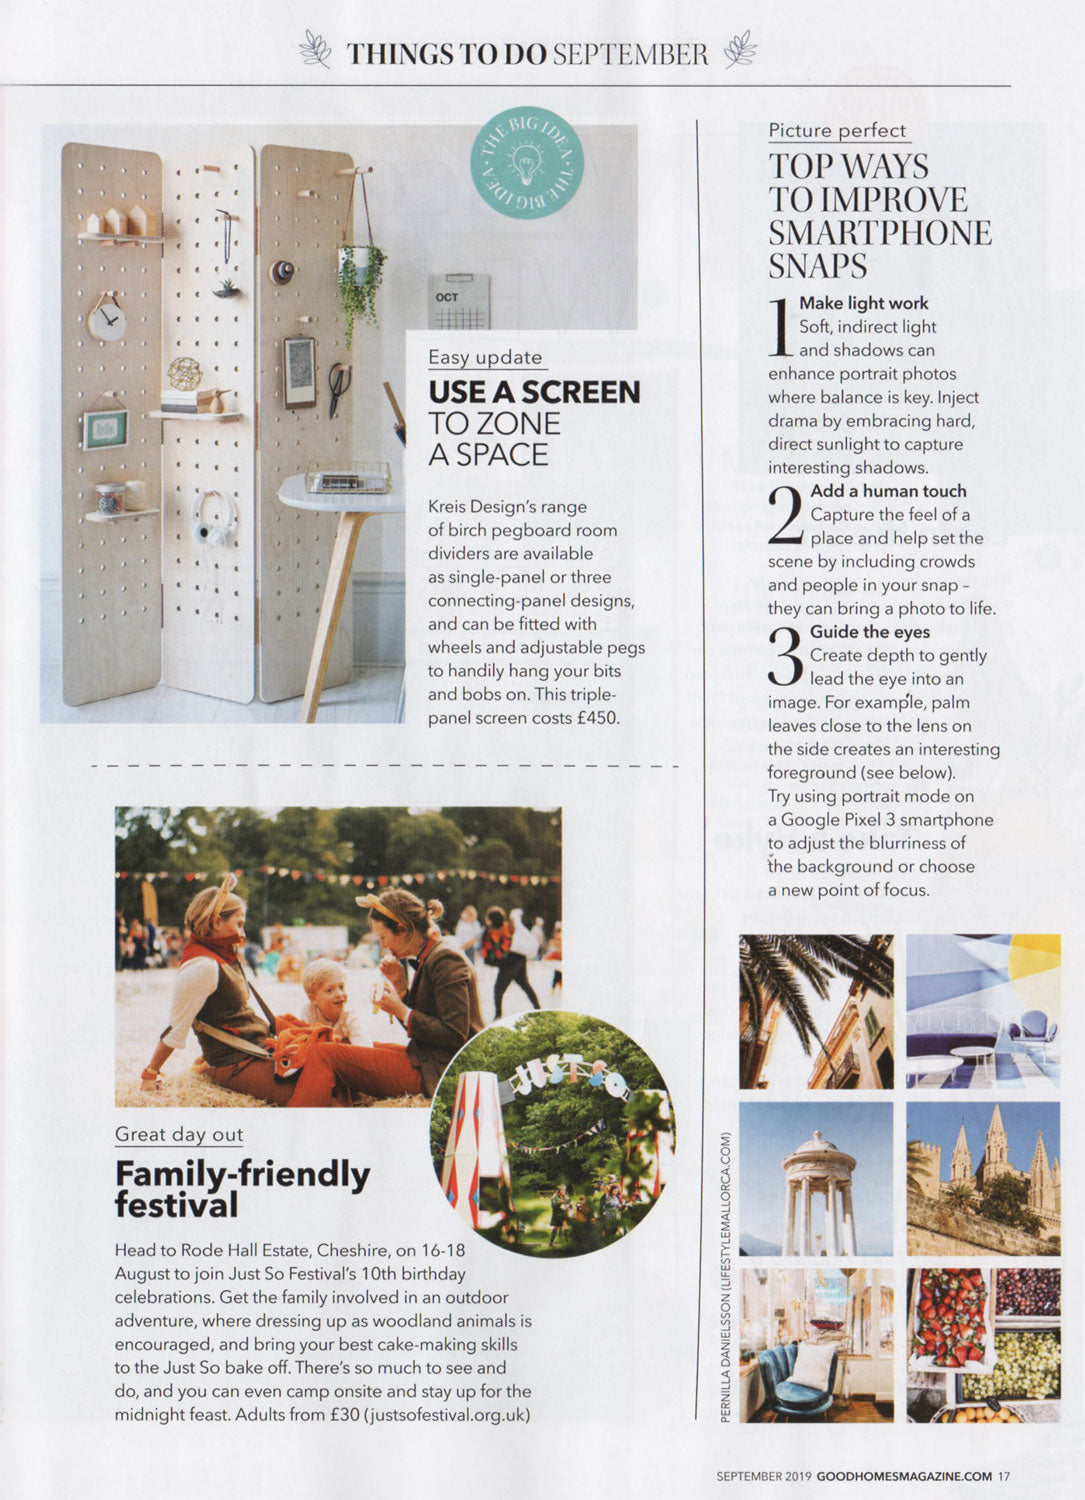 Pegboard folding room divider screen by Kreisdesign made from birch plywood featured in Good homes magazine